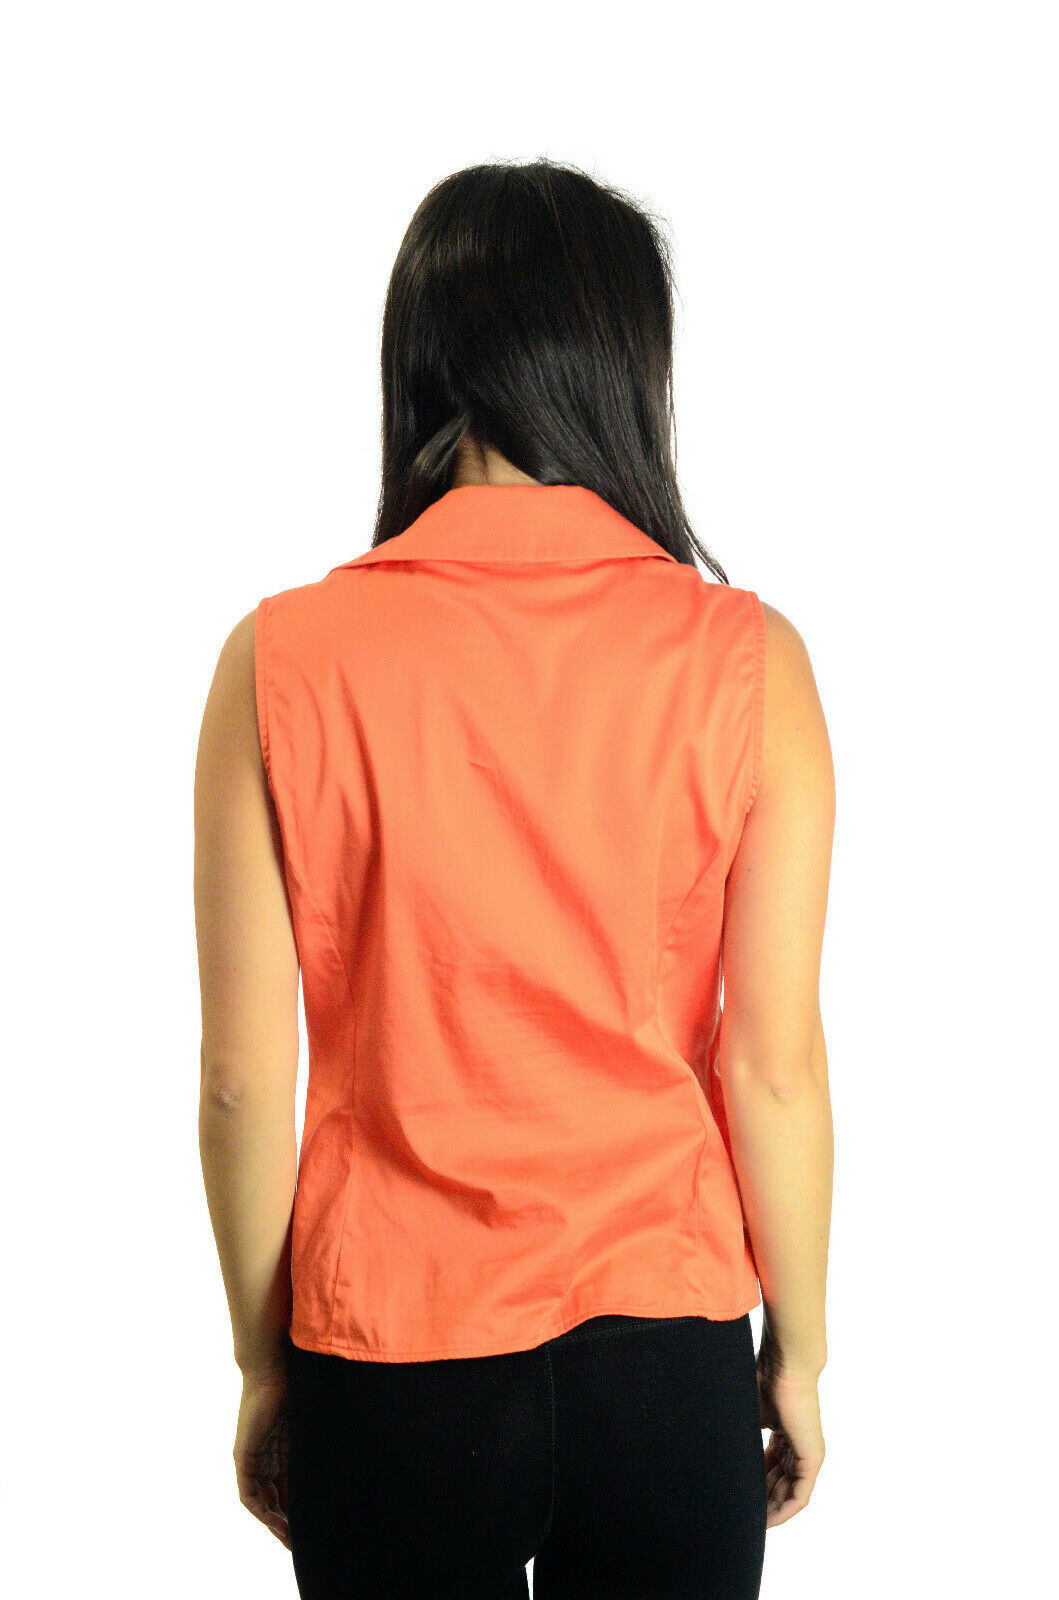 Size S Jones New York Bright Orange Sleeveless Collared Top w/Side Zip Closure